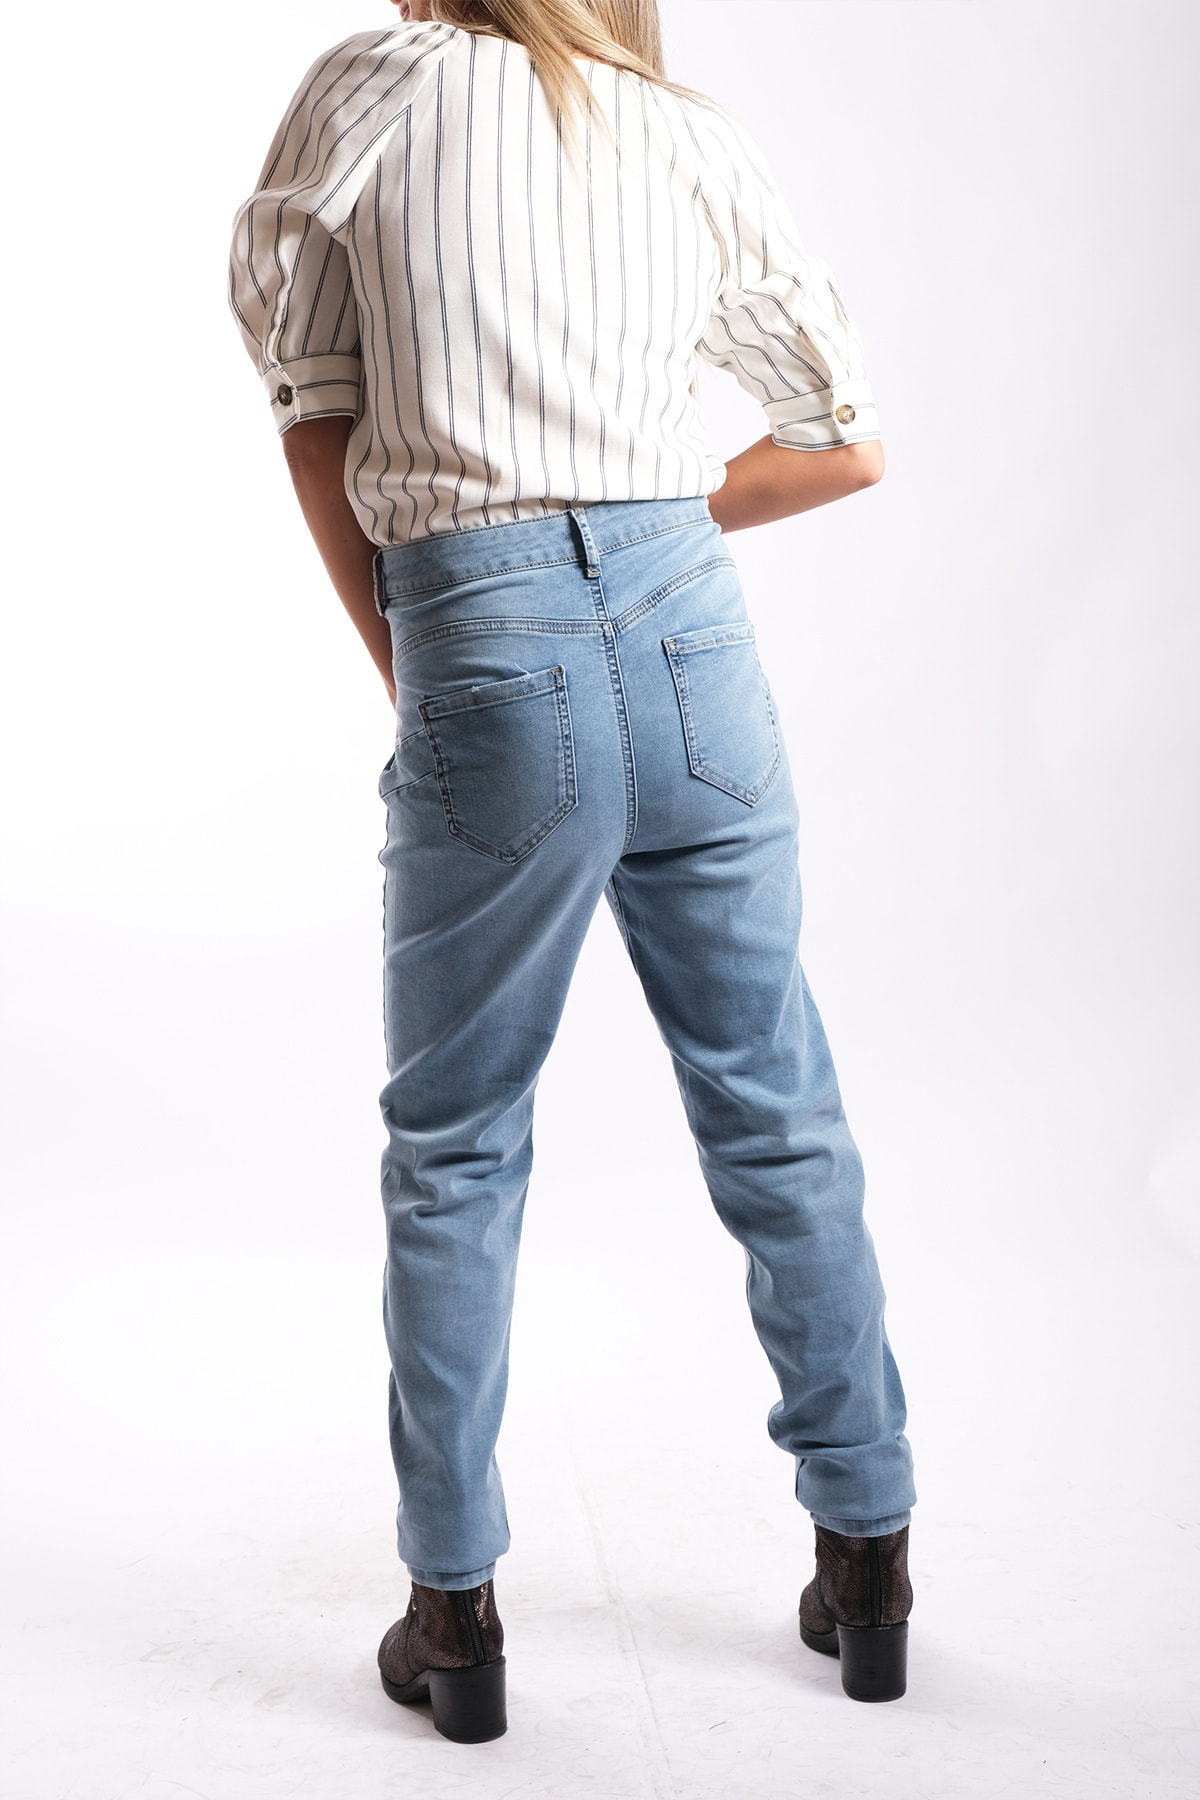 Blues Outlet Kadın Beli Korseli Jeans 1